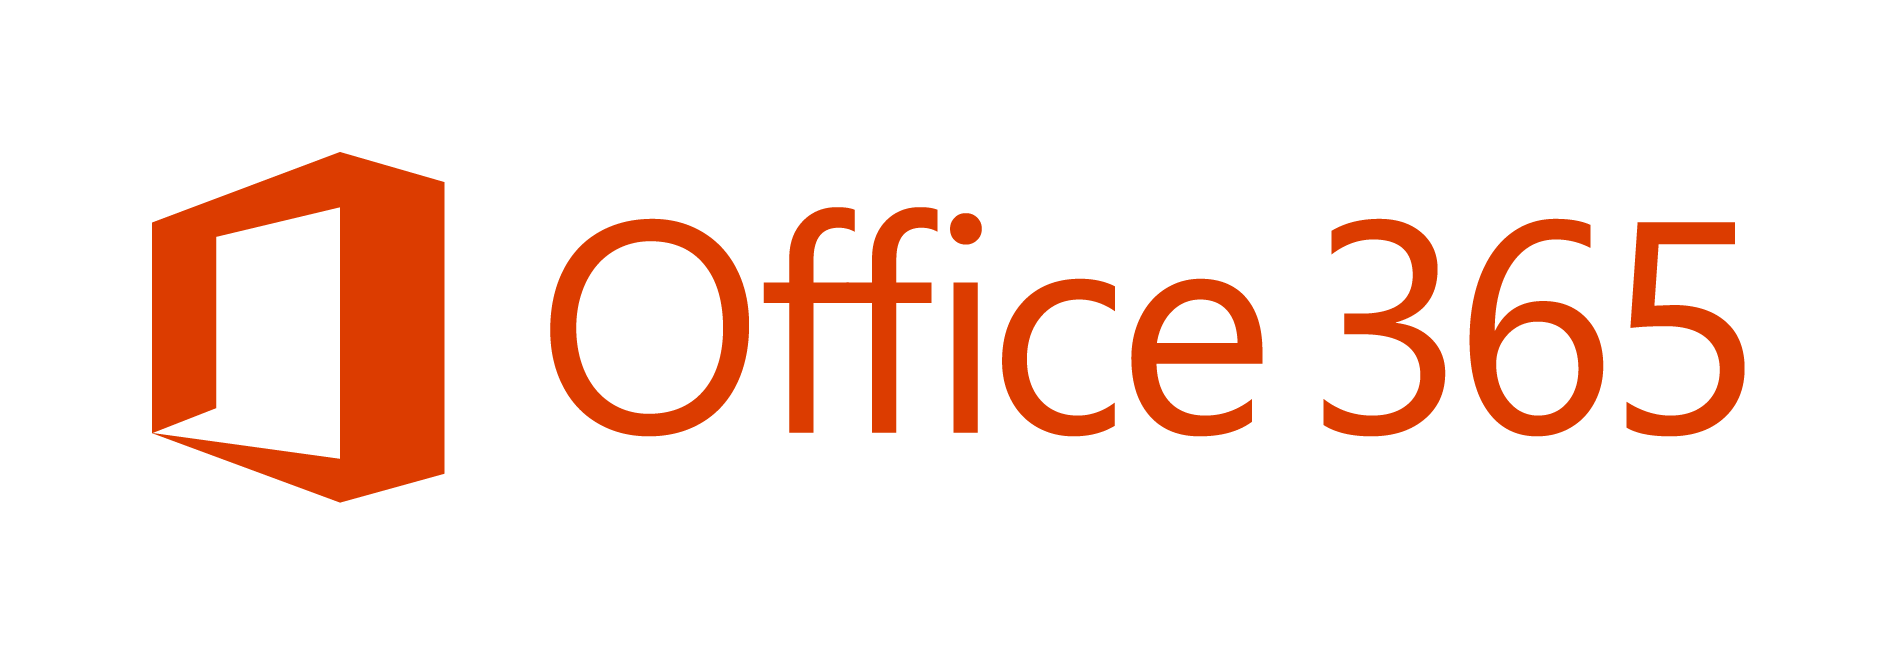 Managed Office 365 Email